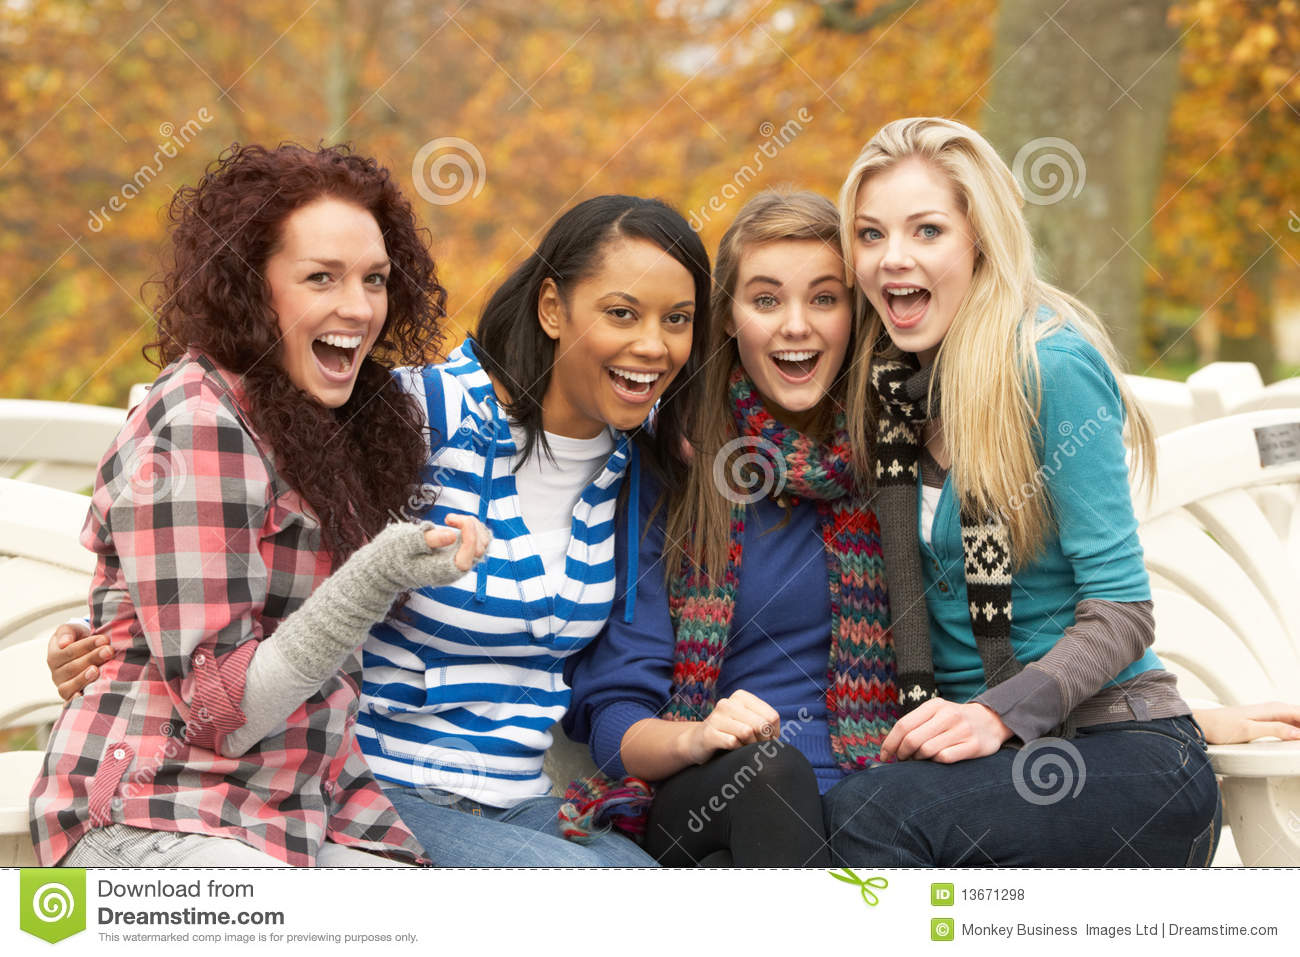 ... Girls Sitting On Bench Royalty Free Stock Photos - Image: 13671298